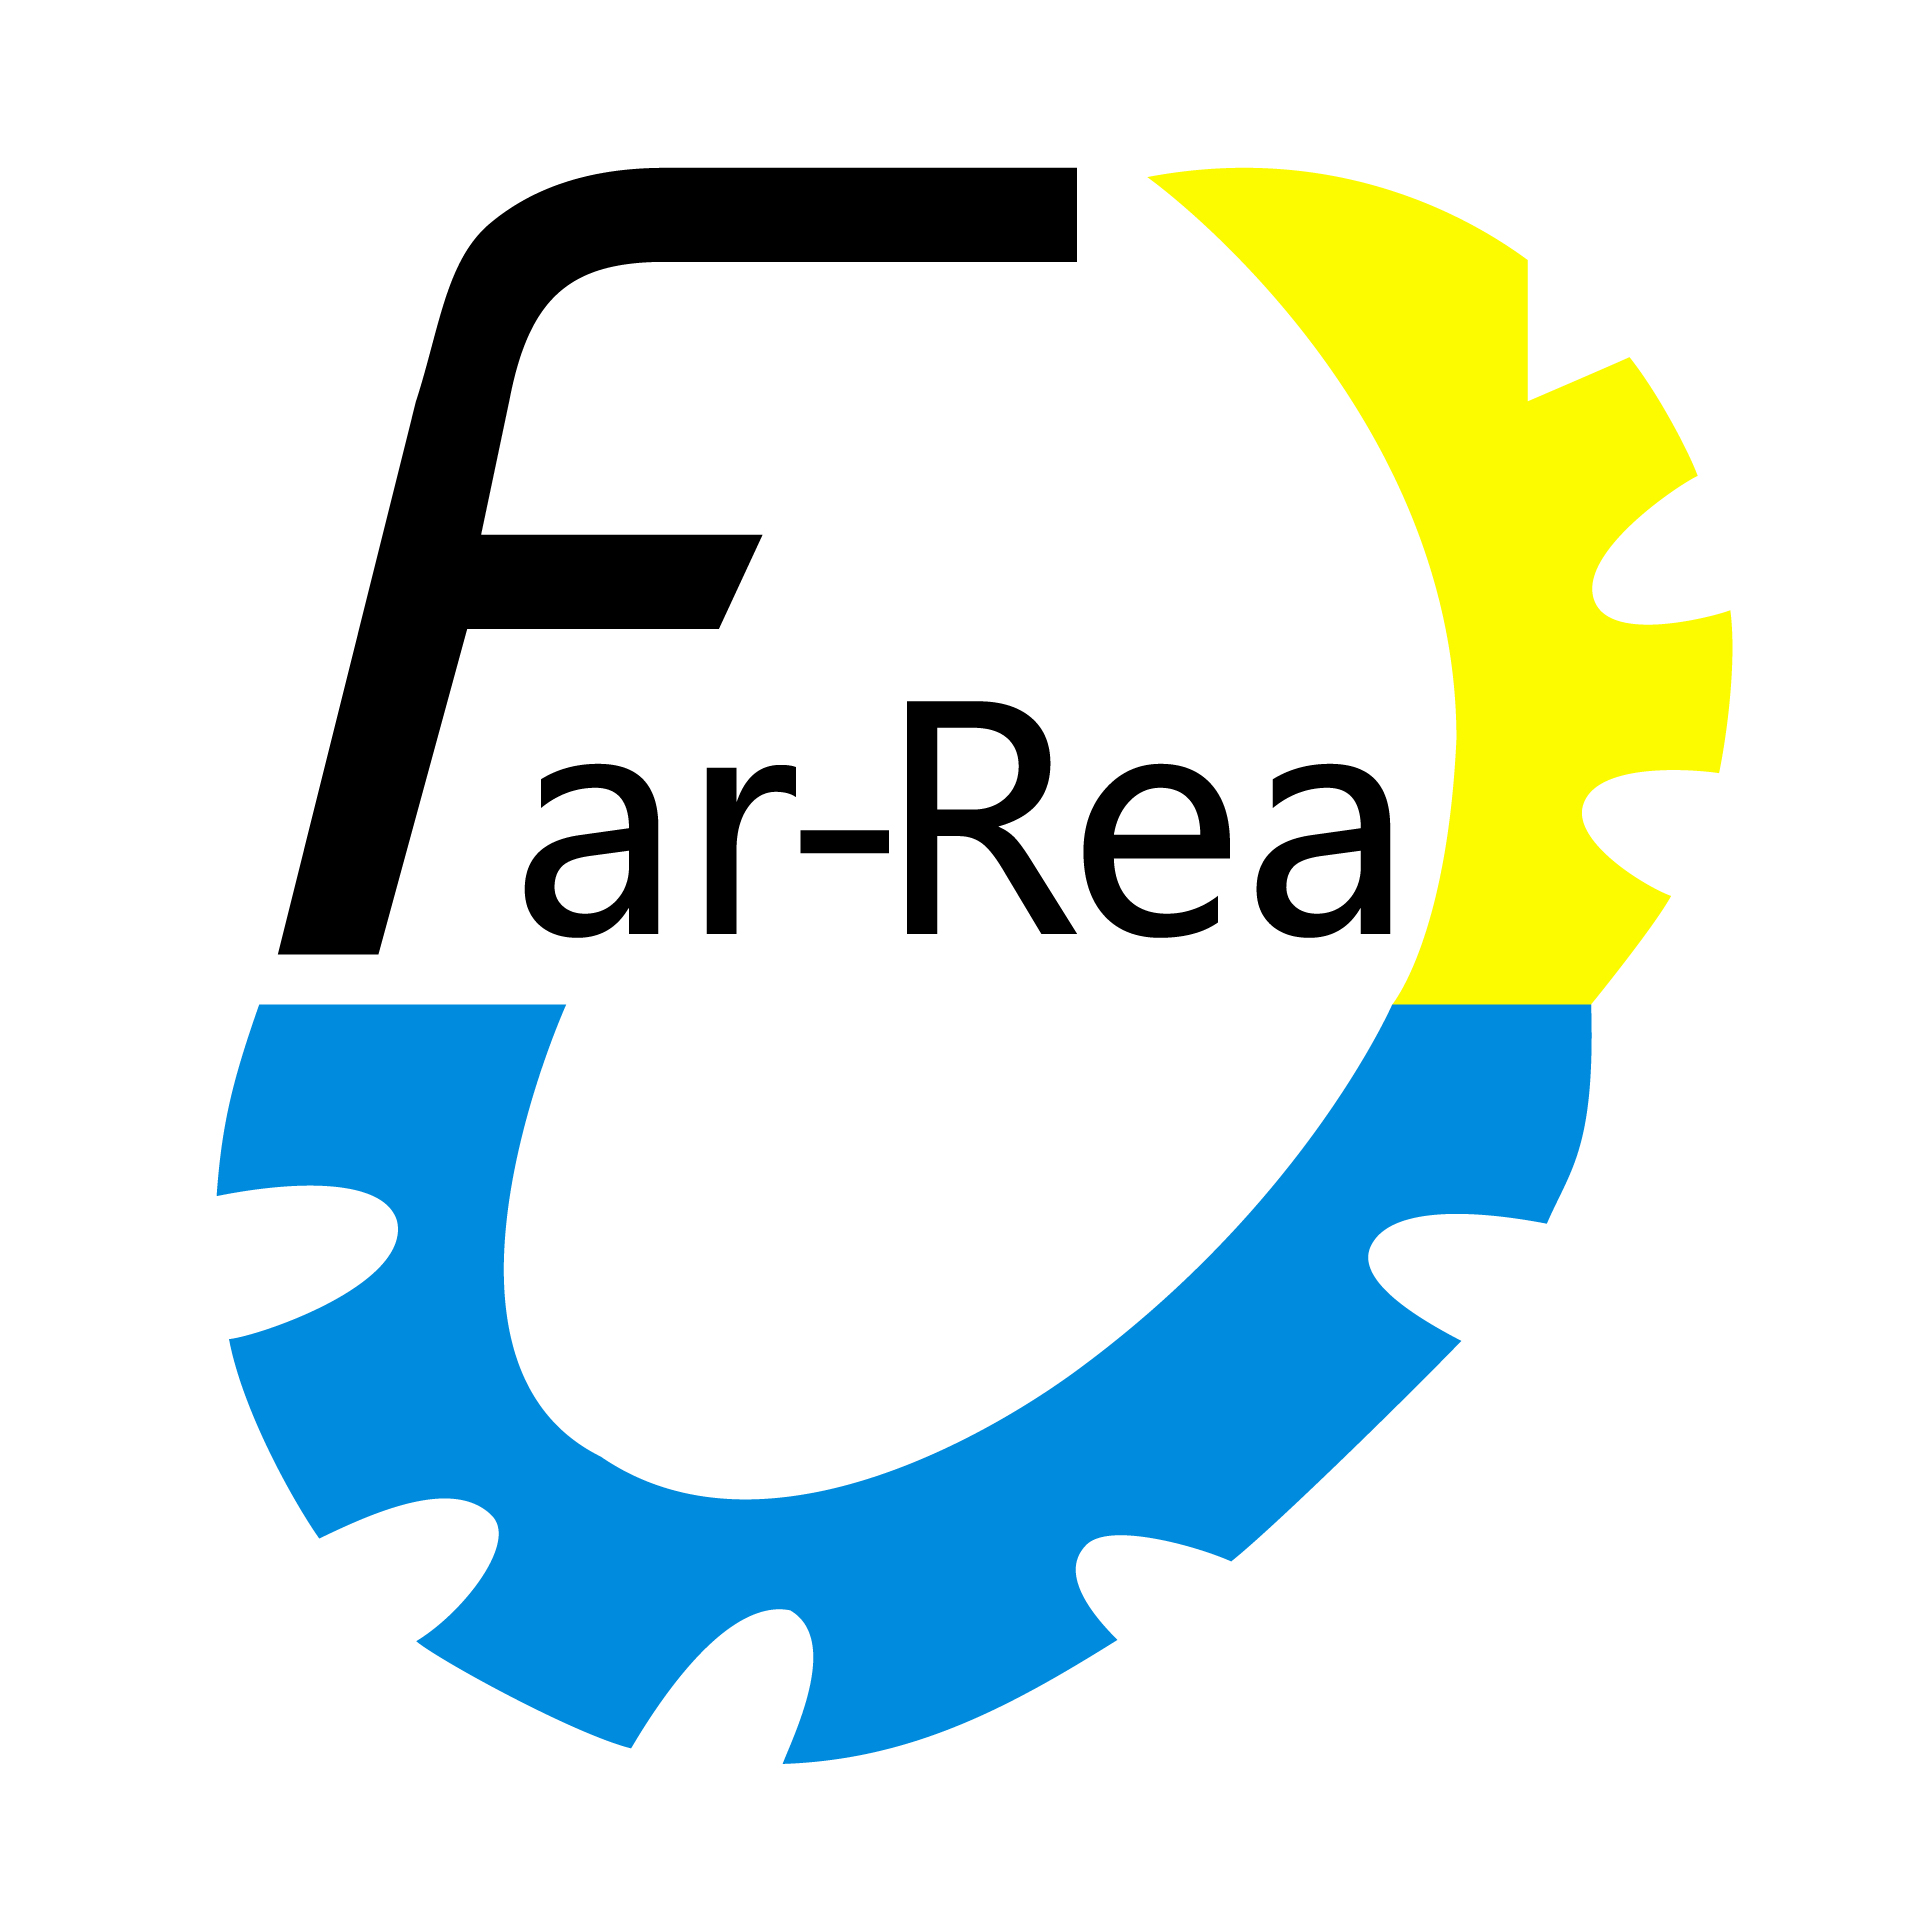 Far-rea Optronics